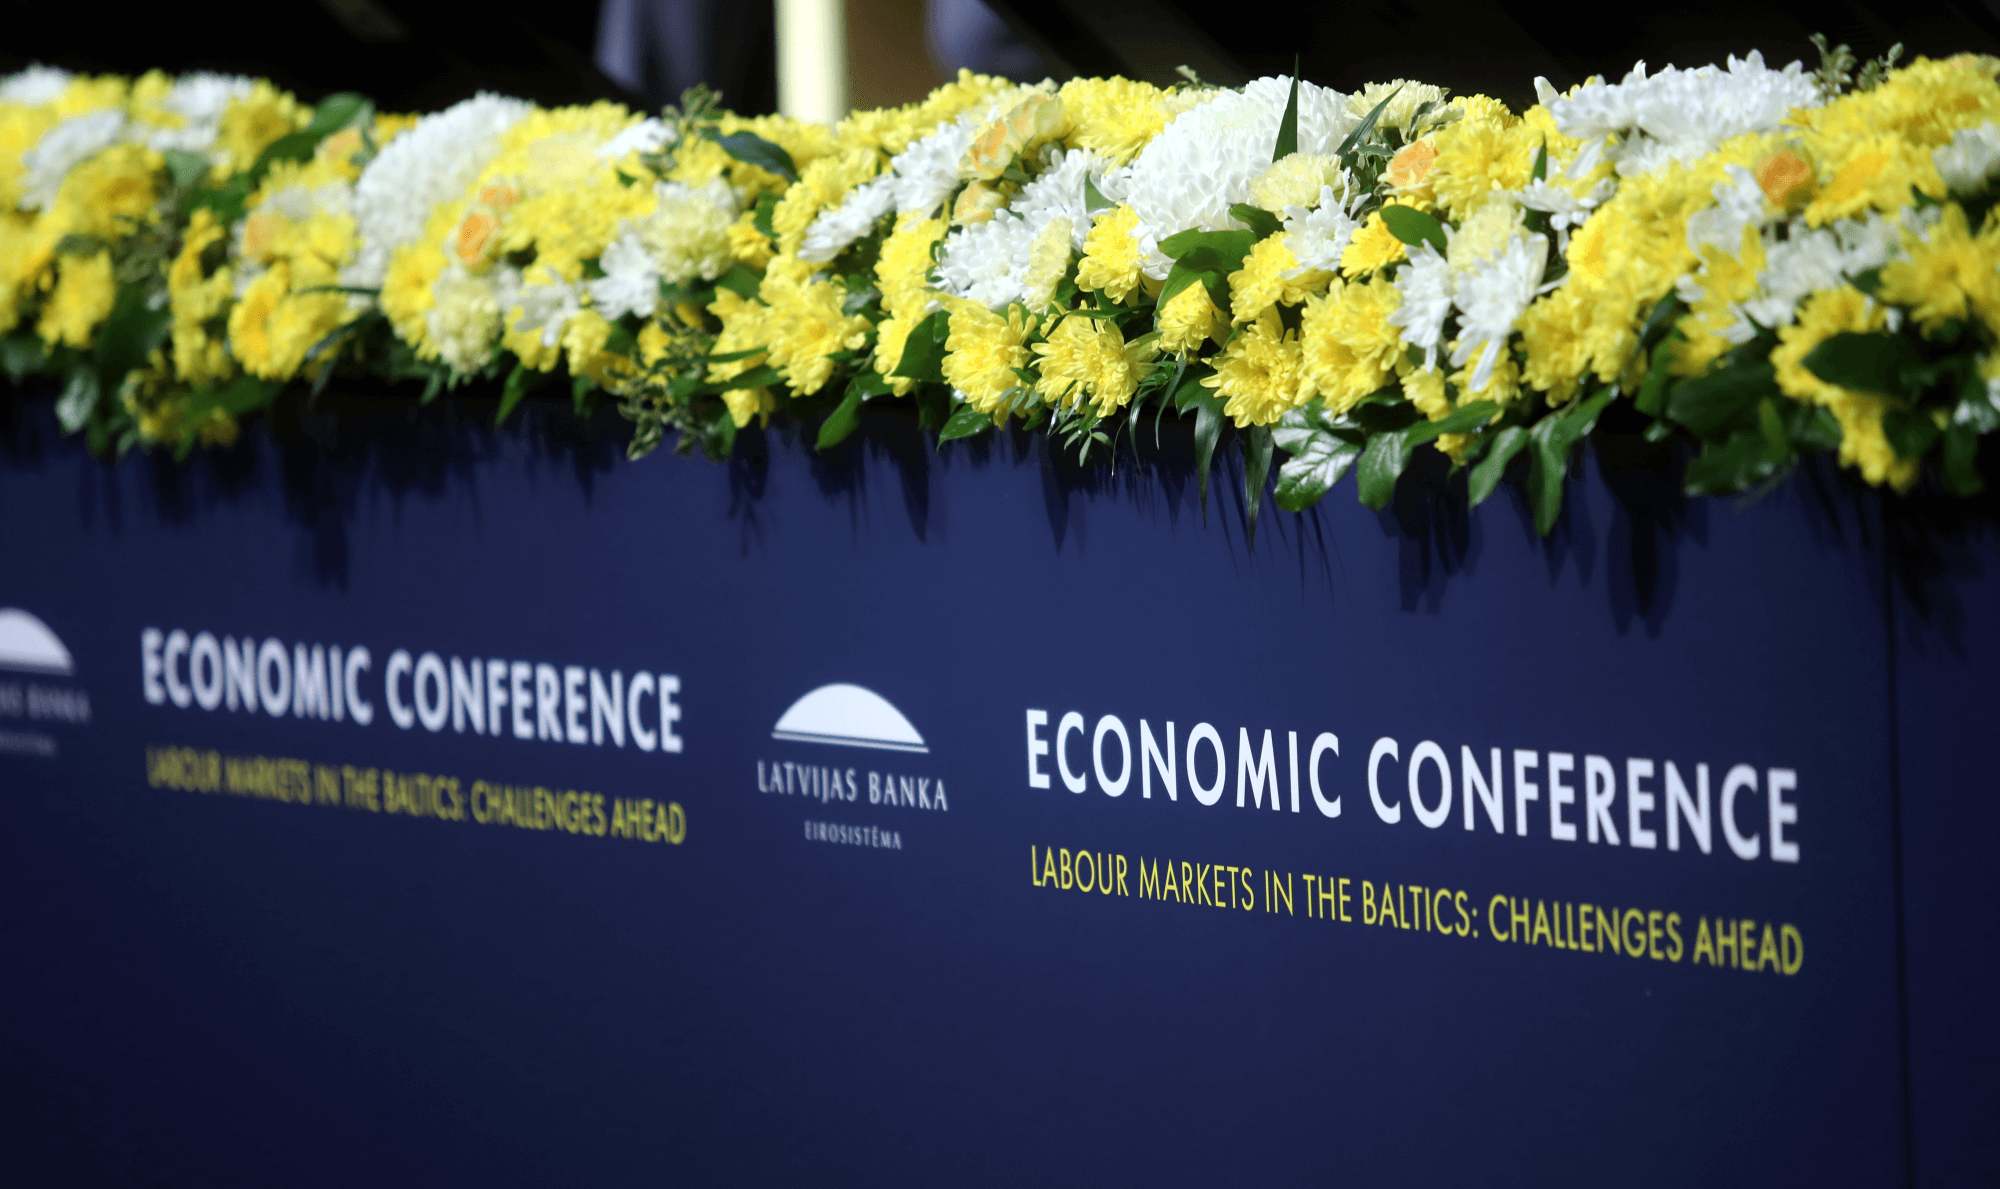 """Economic Conference """"Labour Markets in the Baltics: Challenges Ahead"""""""